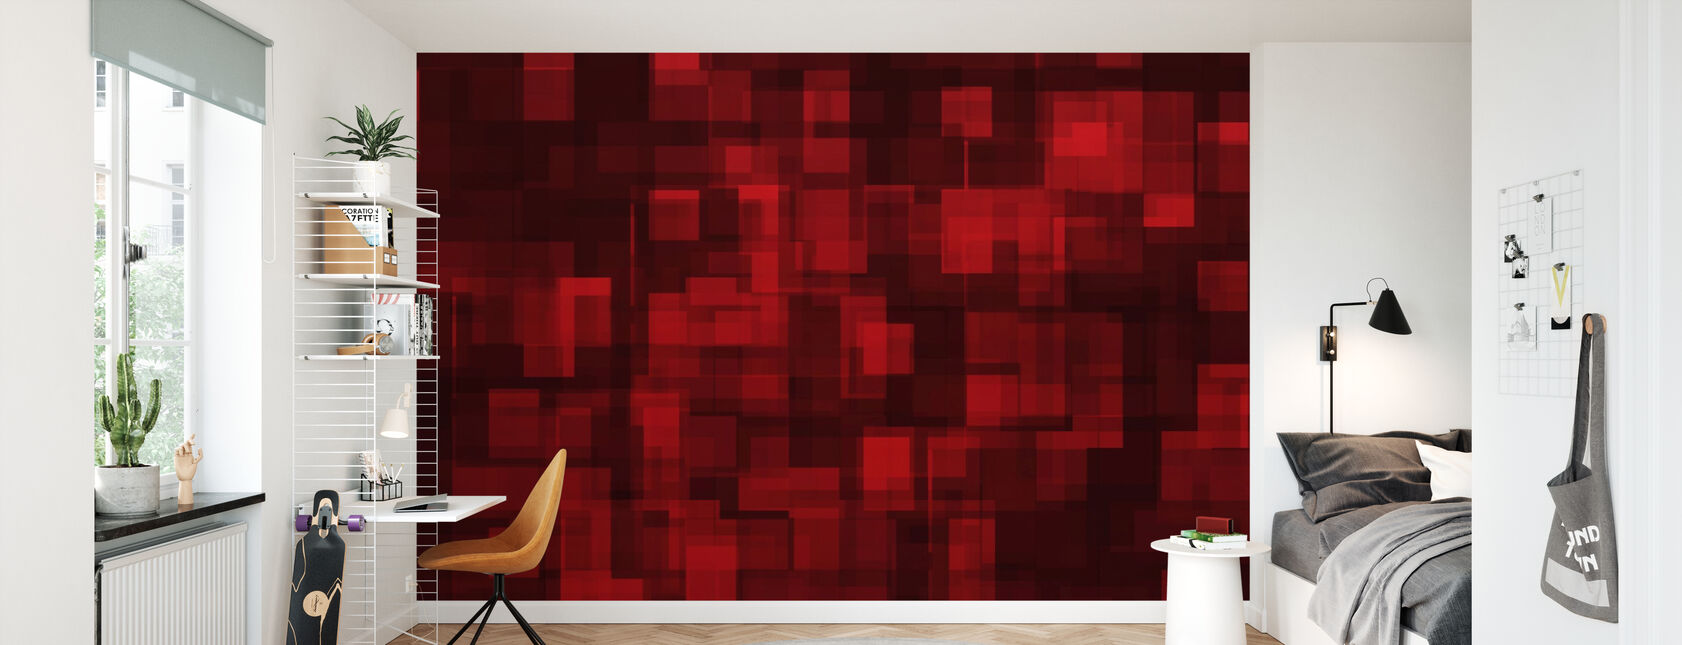 Chaotic Red - Wallpaper - Kids Room